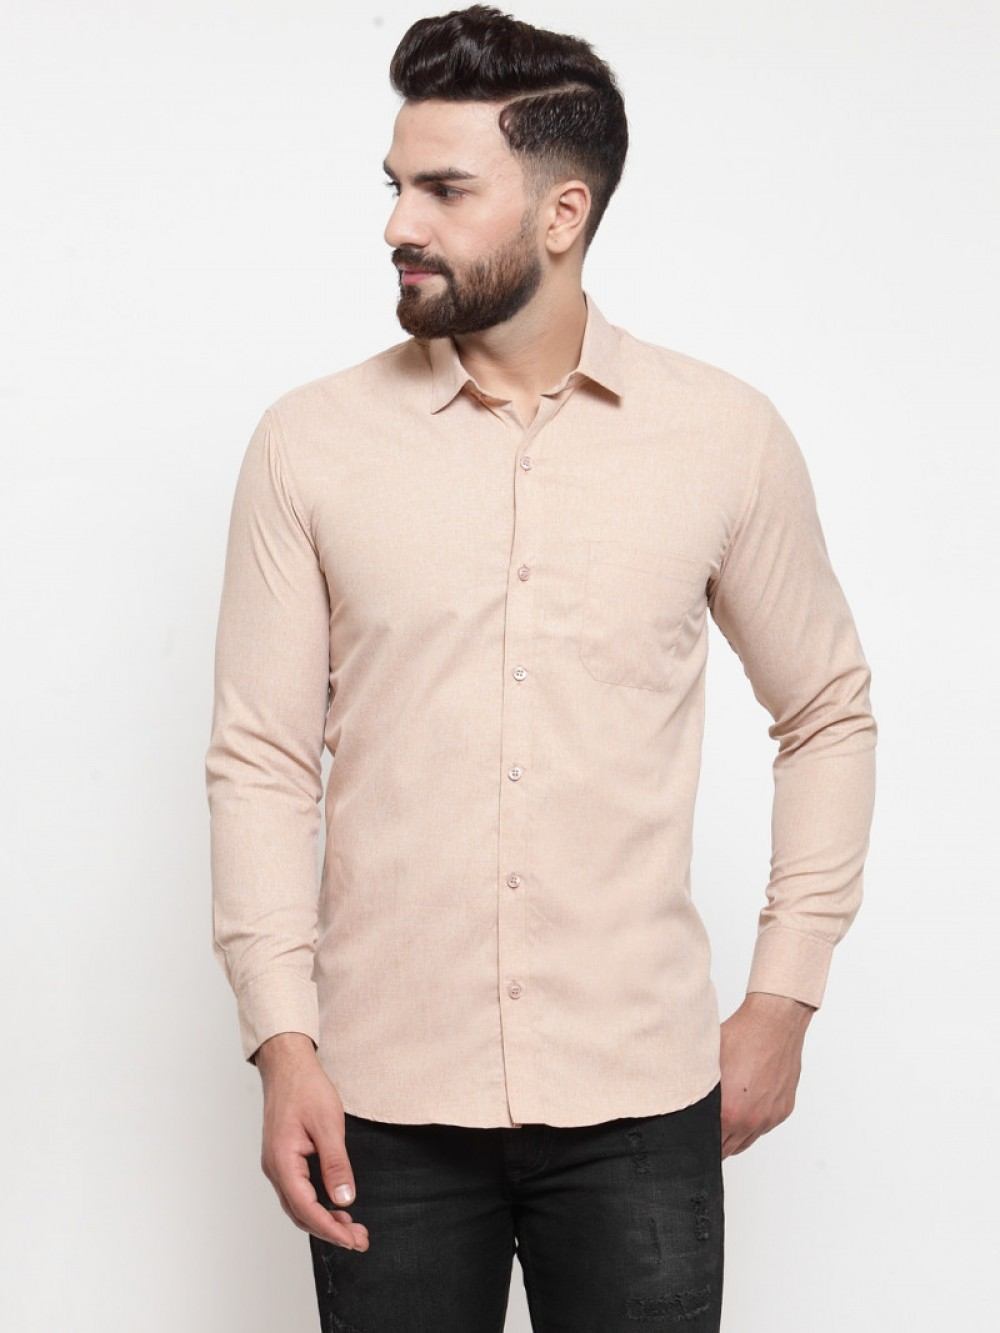 Attractive Light Brown Color Formal Shirt